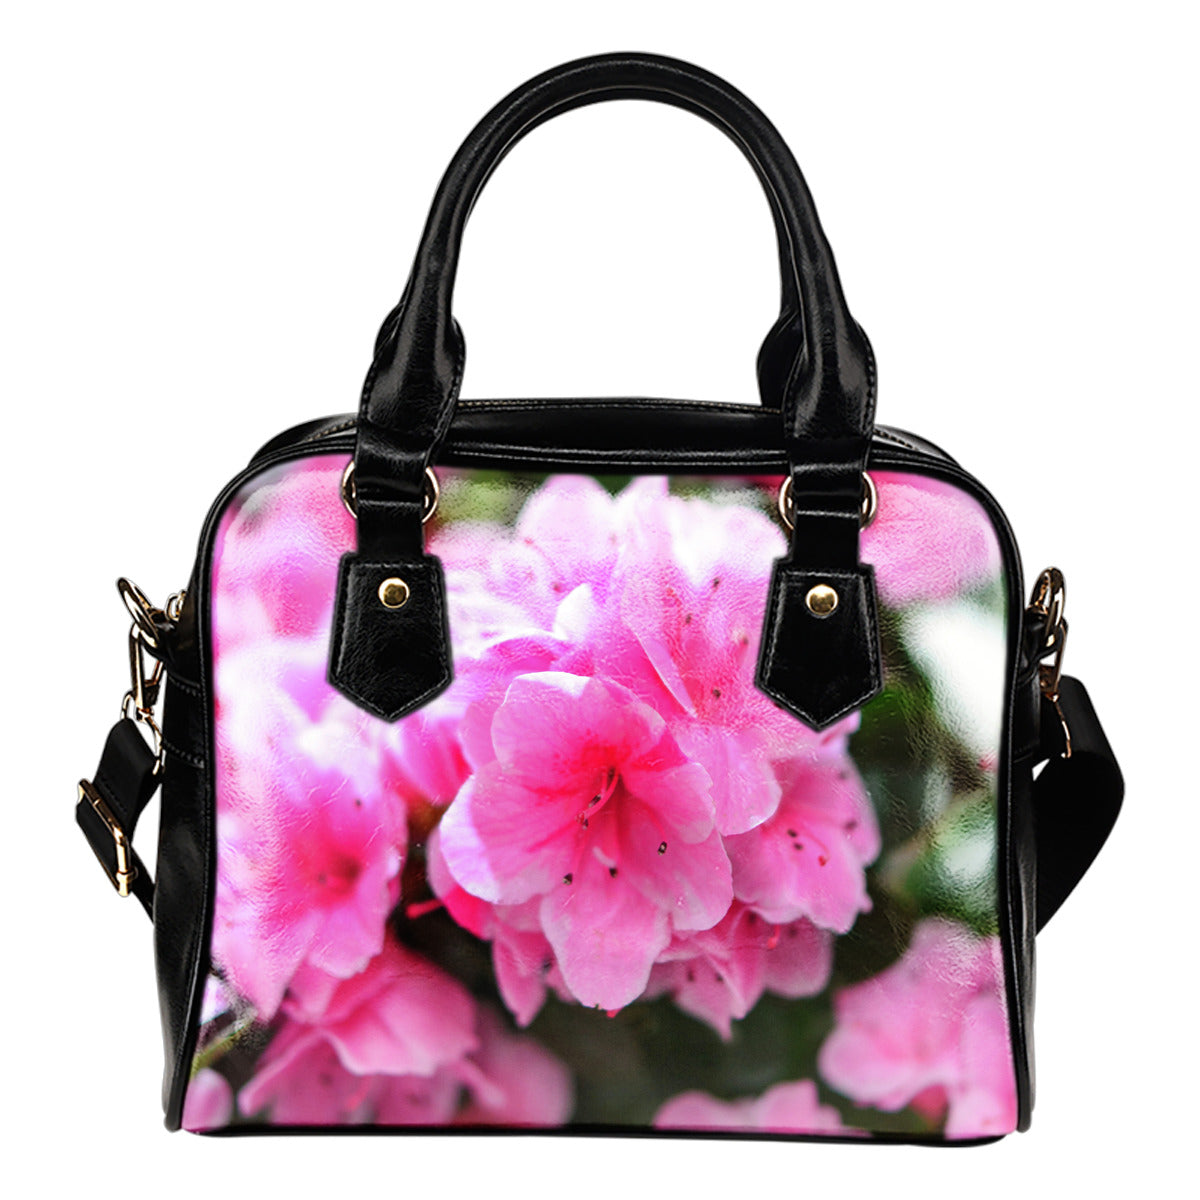 ... SHOULDER HANDBAGS - FLOWER DESIGNS! SPRING BLOSSOMS